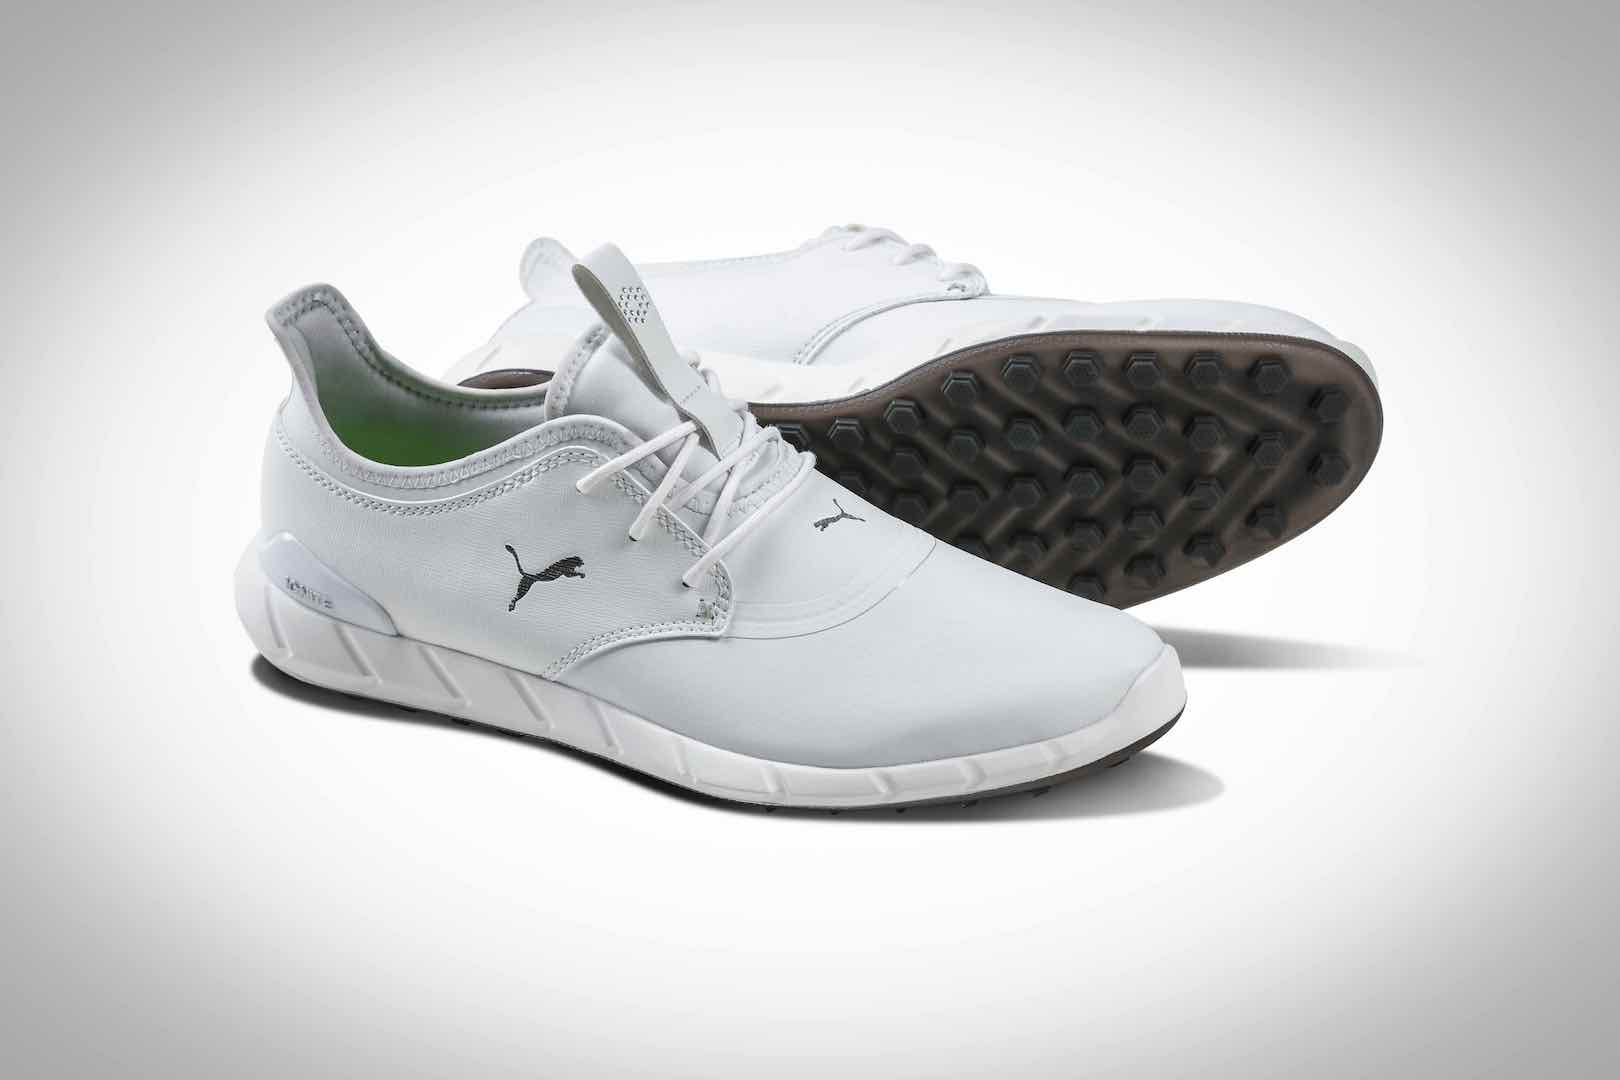 f190e493a17 PUMA Golf launches new shoe collections IGNITE DISC ...